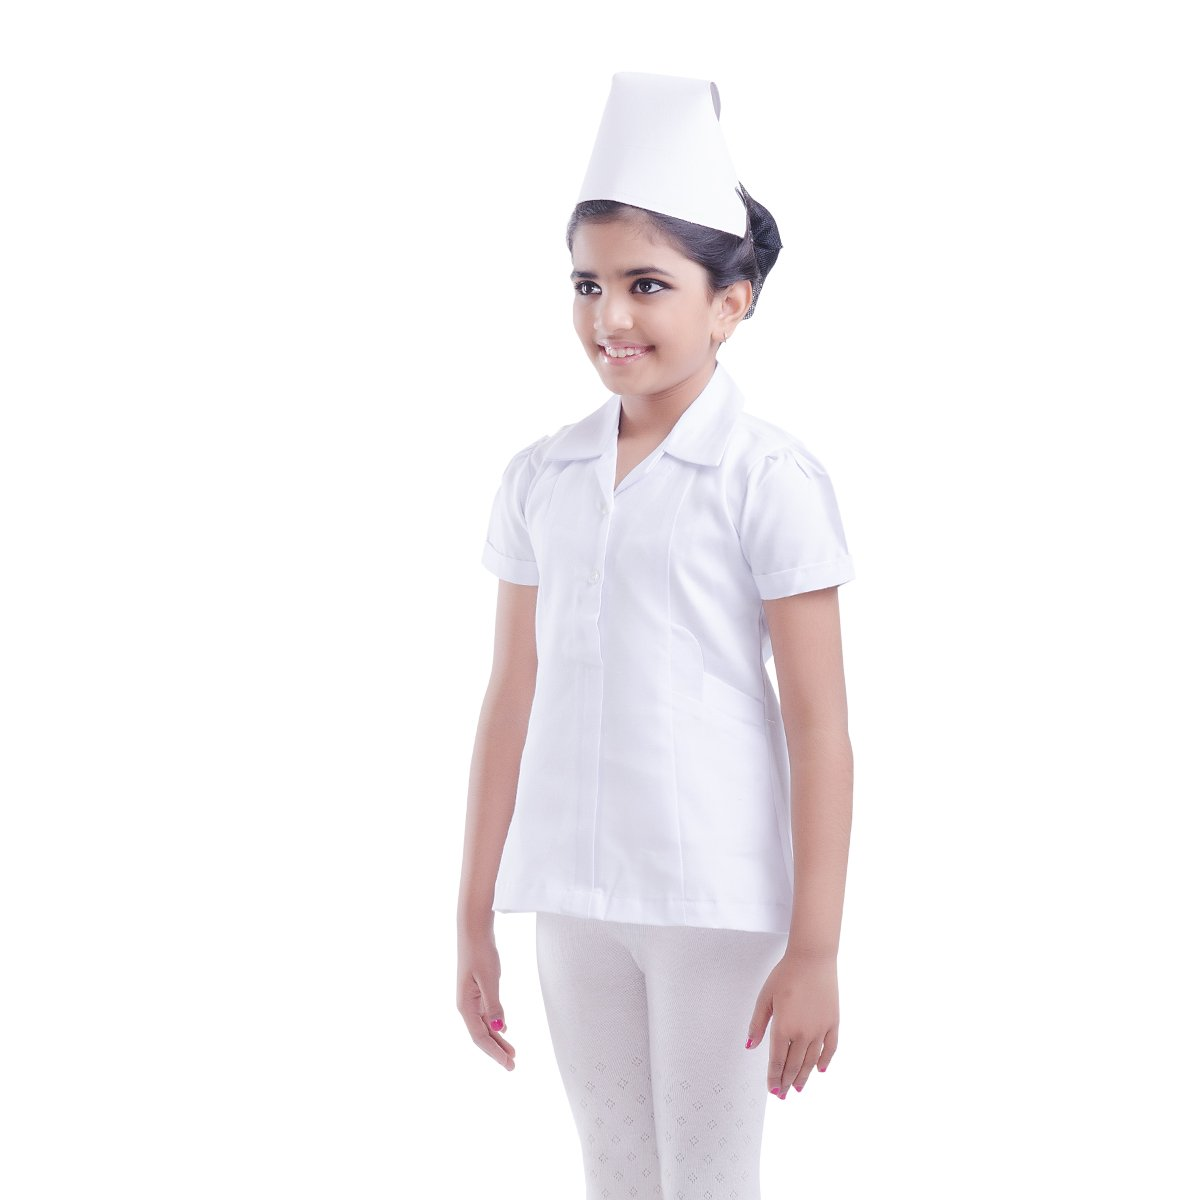 131f82972f962 Buy FancyDressWale Nurse Costume for Kids (White, 3-4 Years) Online at Low  Prices in India - Amazon.in